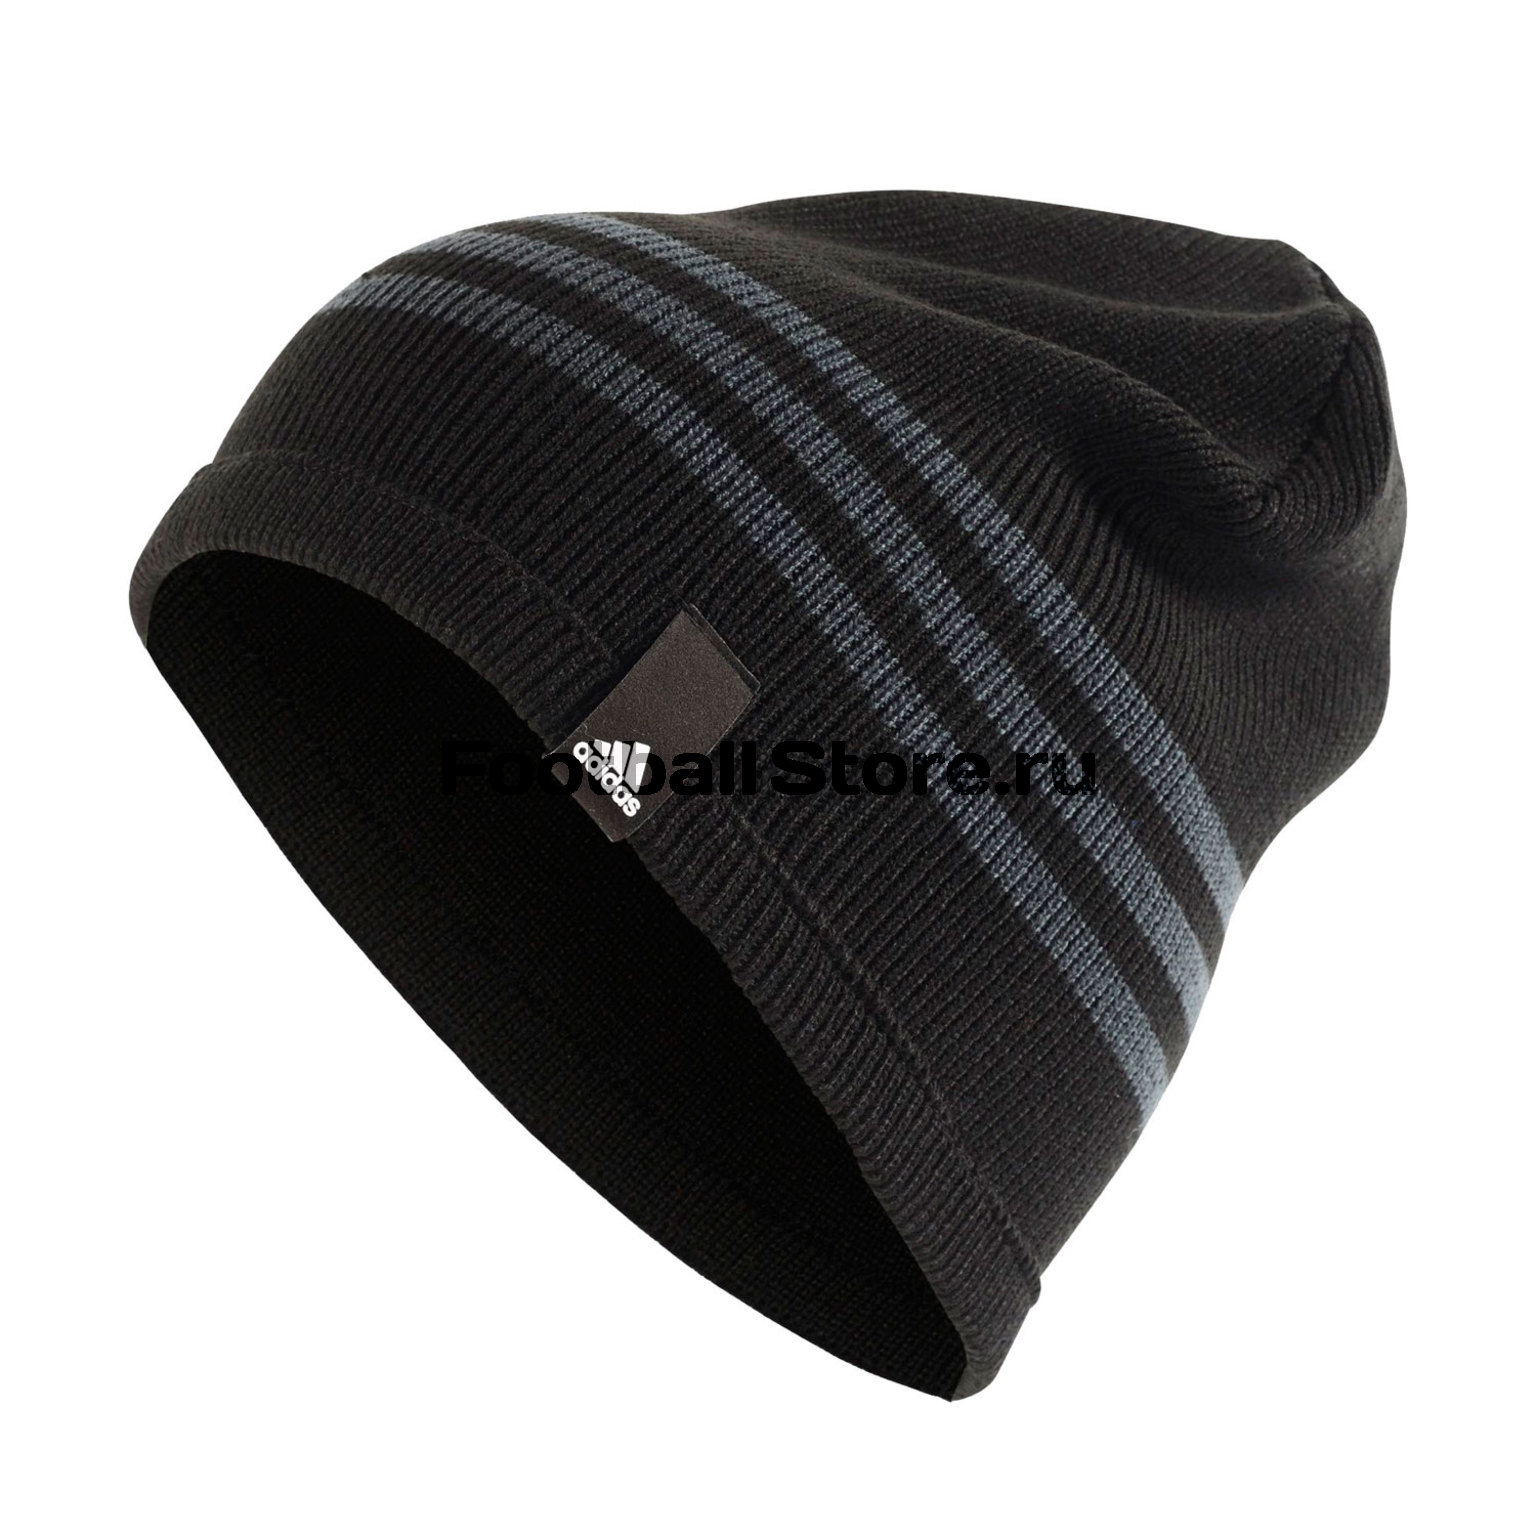 Шапка Adidas Tiro Beanie BQ1662 рюкзак adidas tiro backpack du1996